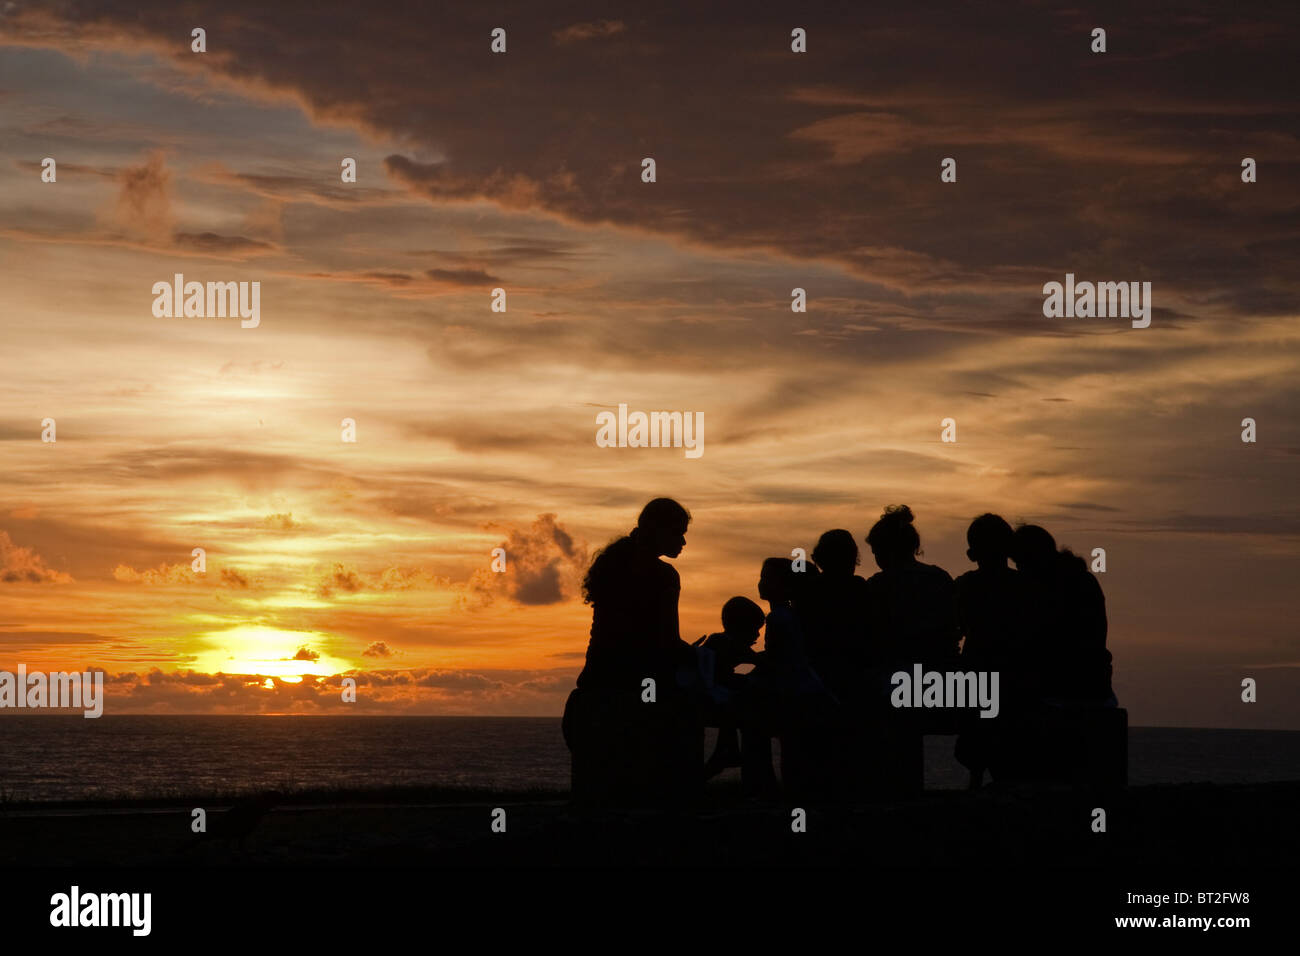 Silhouettes of Sri Lankans along the ramparts of Galle Fort at sunset - Stock Image